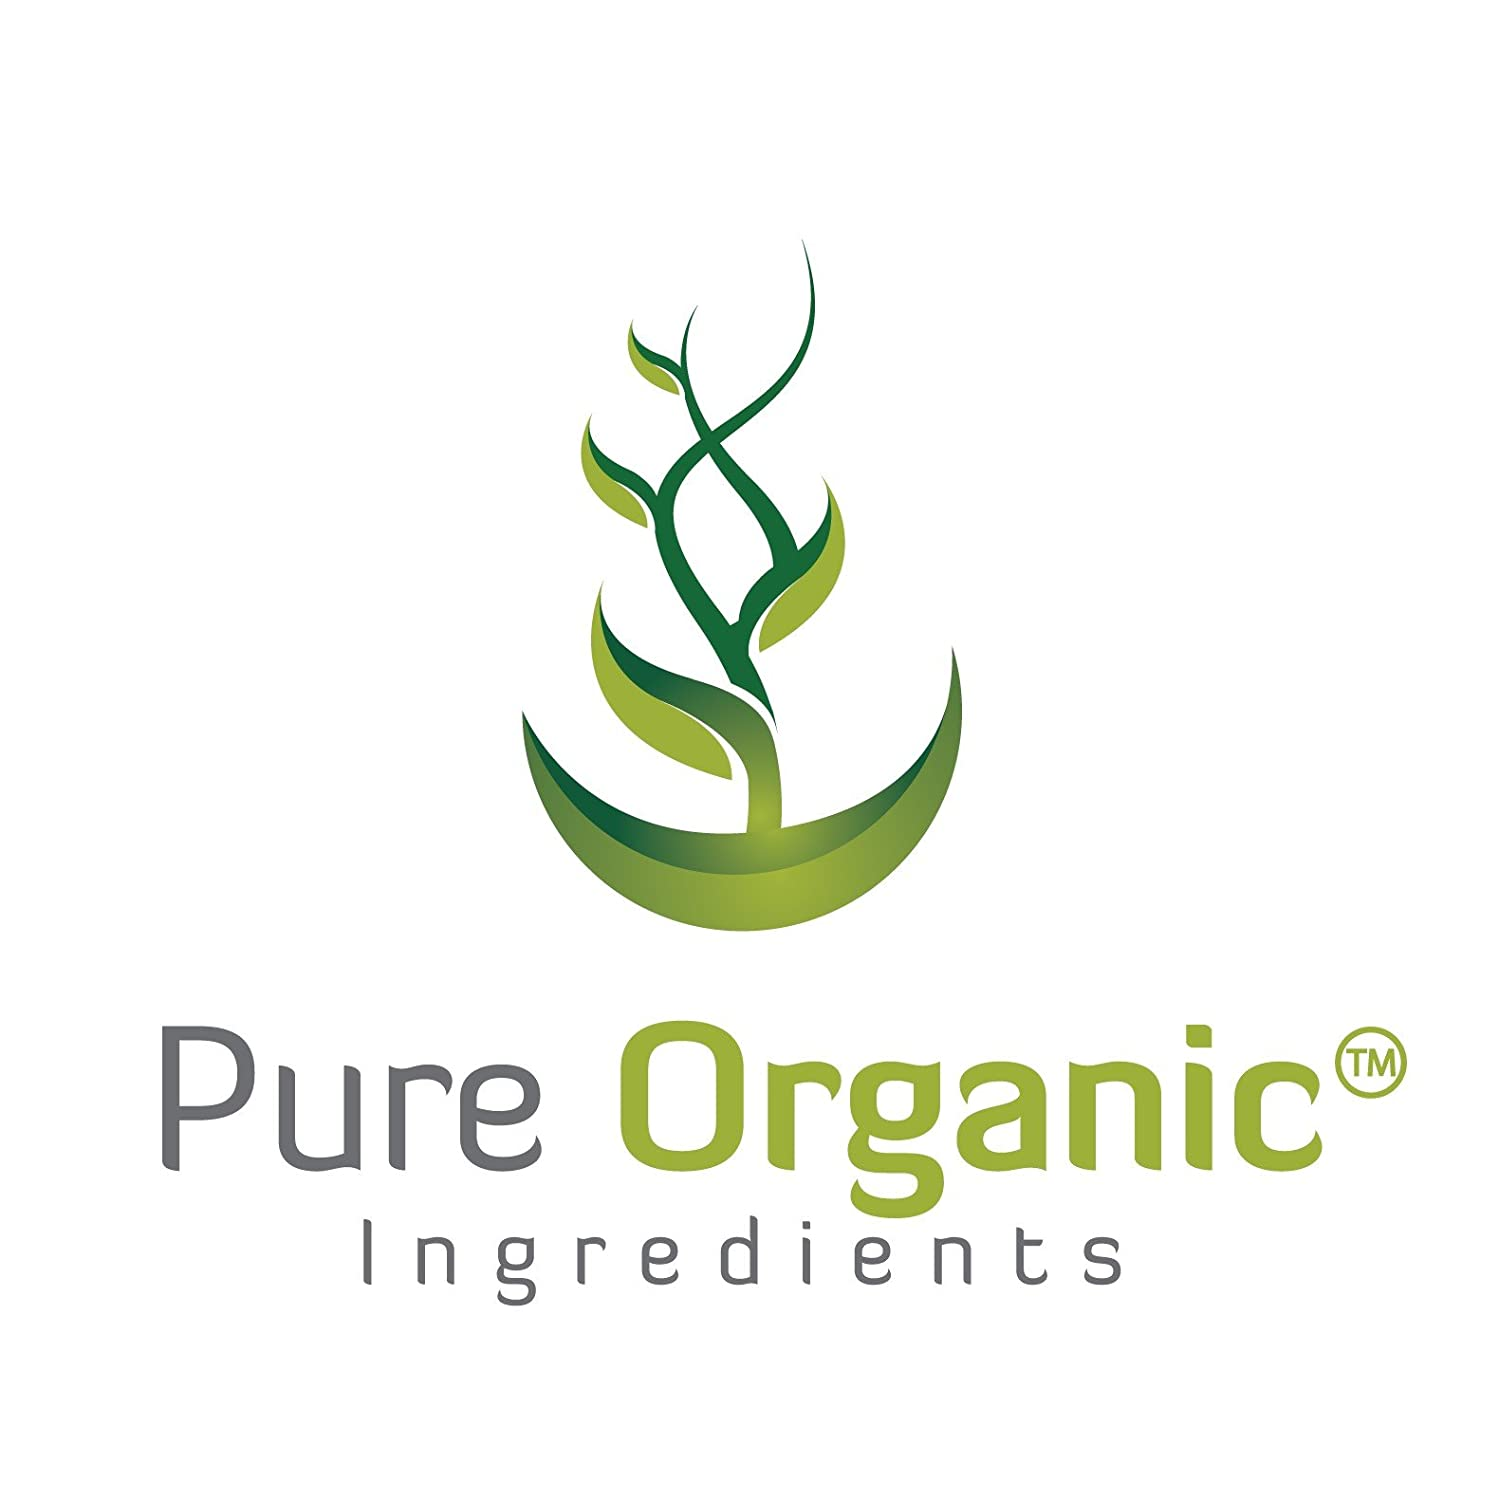 Pure Organic Ingredients Play Sand Building /& Molding Promotes Creativity Indoor//Outdoor Eco-Friendly Packaging, Sandbox /& Play Areas 5 lb